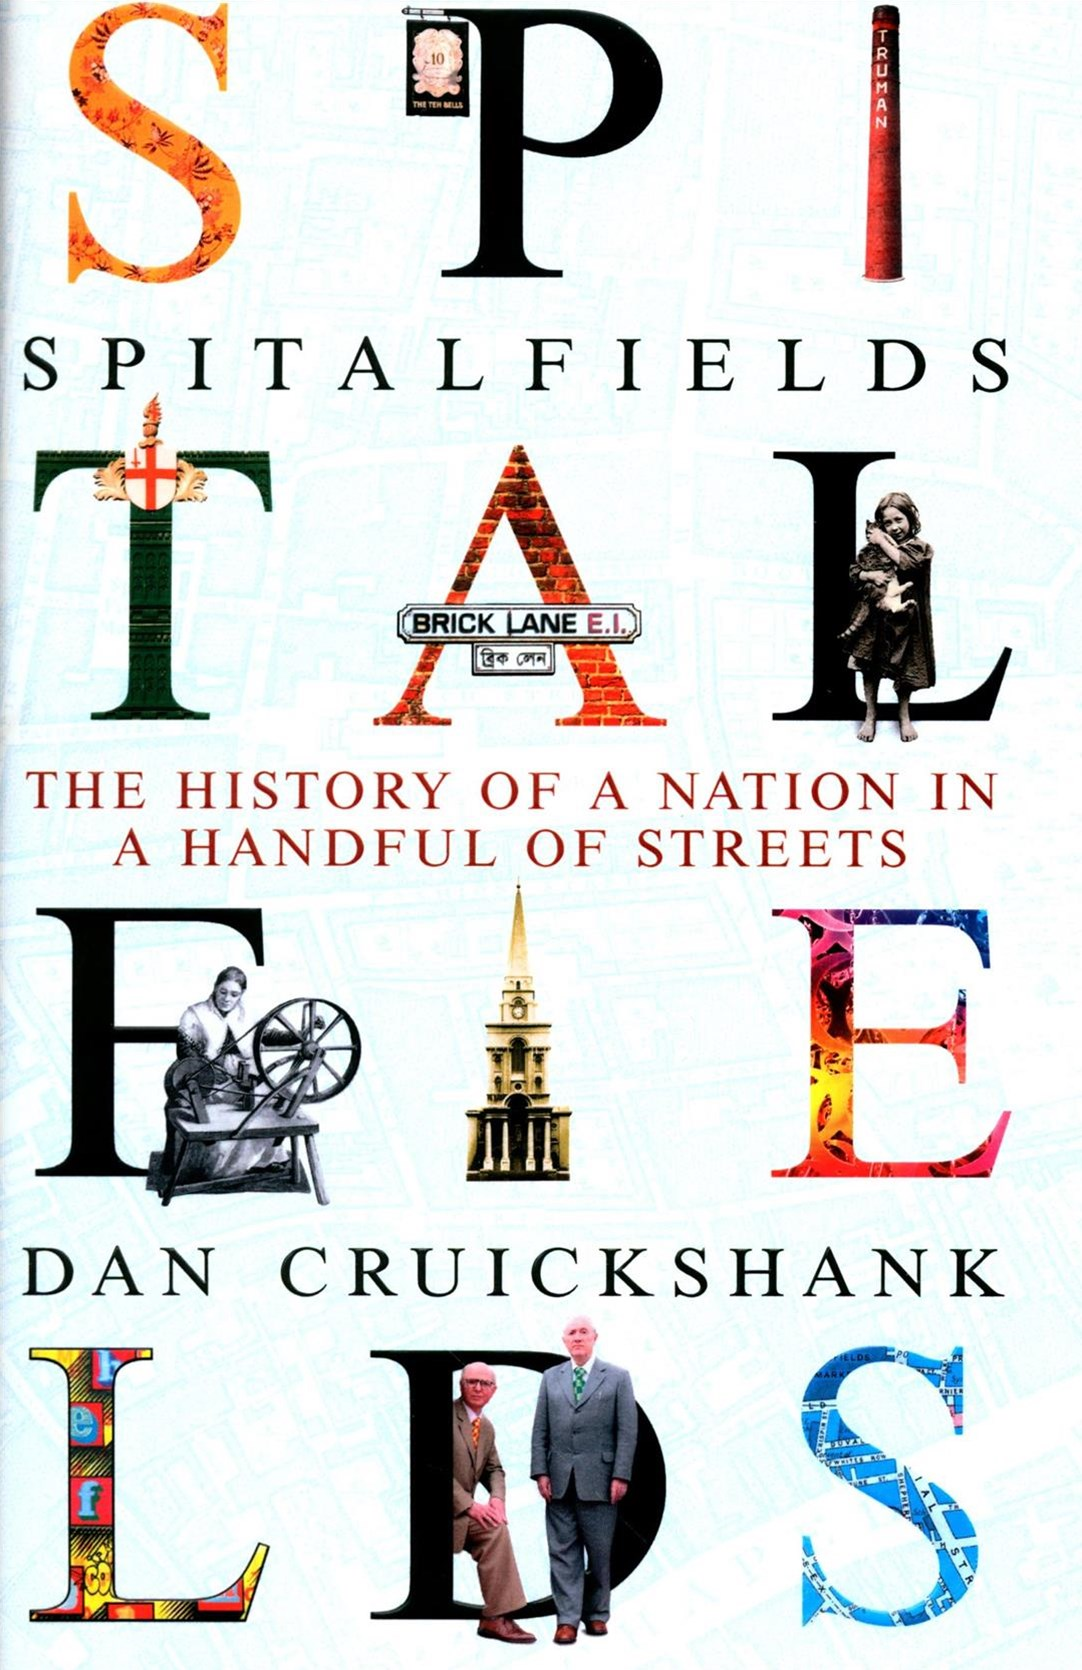 Spitalfields: Two Thousand Years of English History in One Neighbourhood